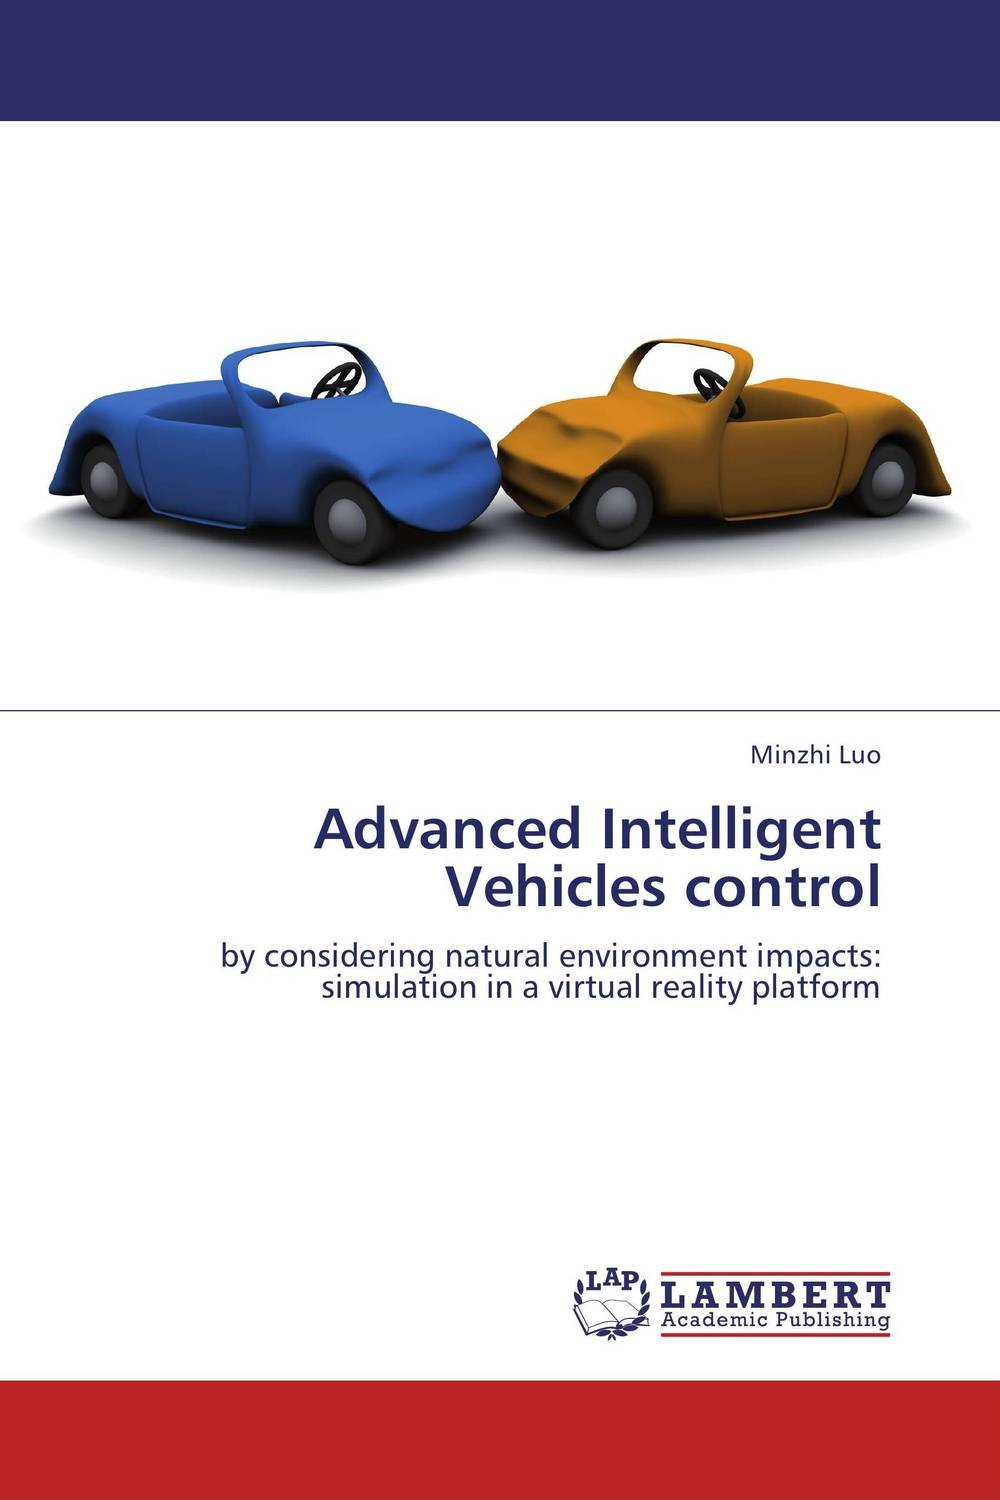 Advanced Intelligent Vehicles control firas abdullah thweny al saedi and fadi khalid ibrahim al khalidi design of a three dimensional virtual reality environment